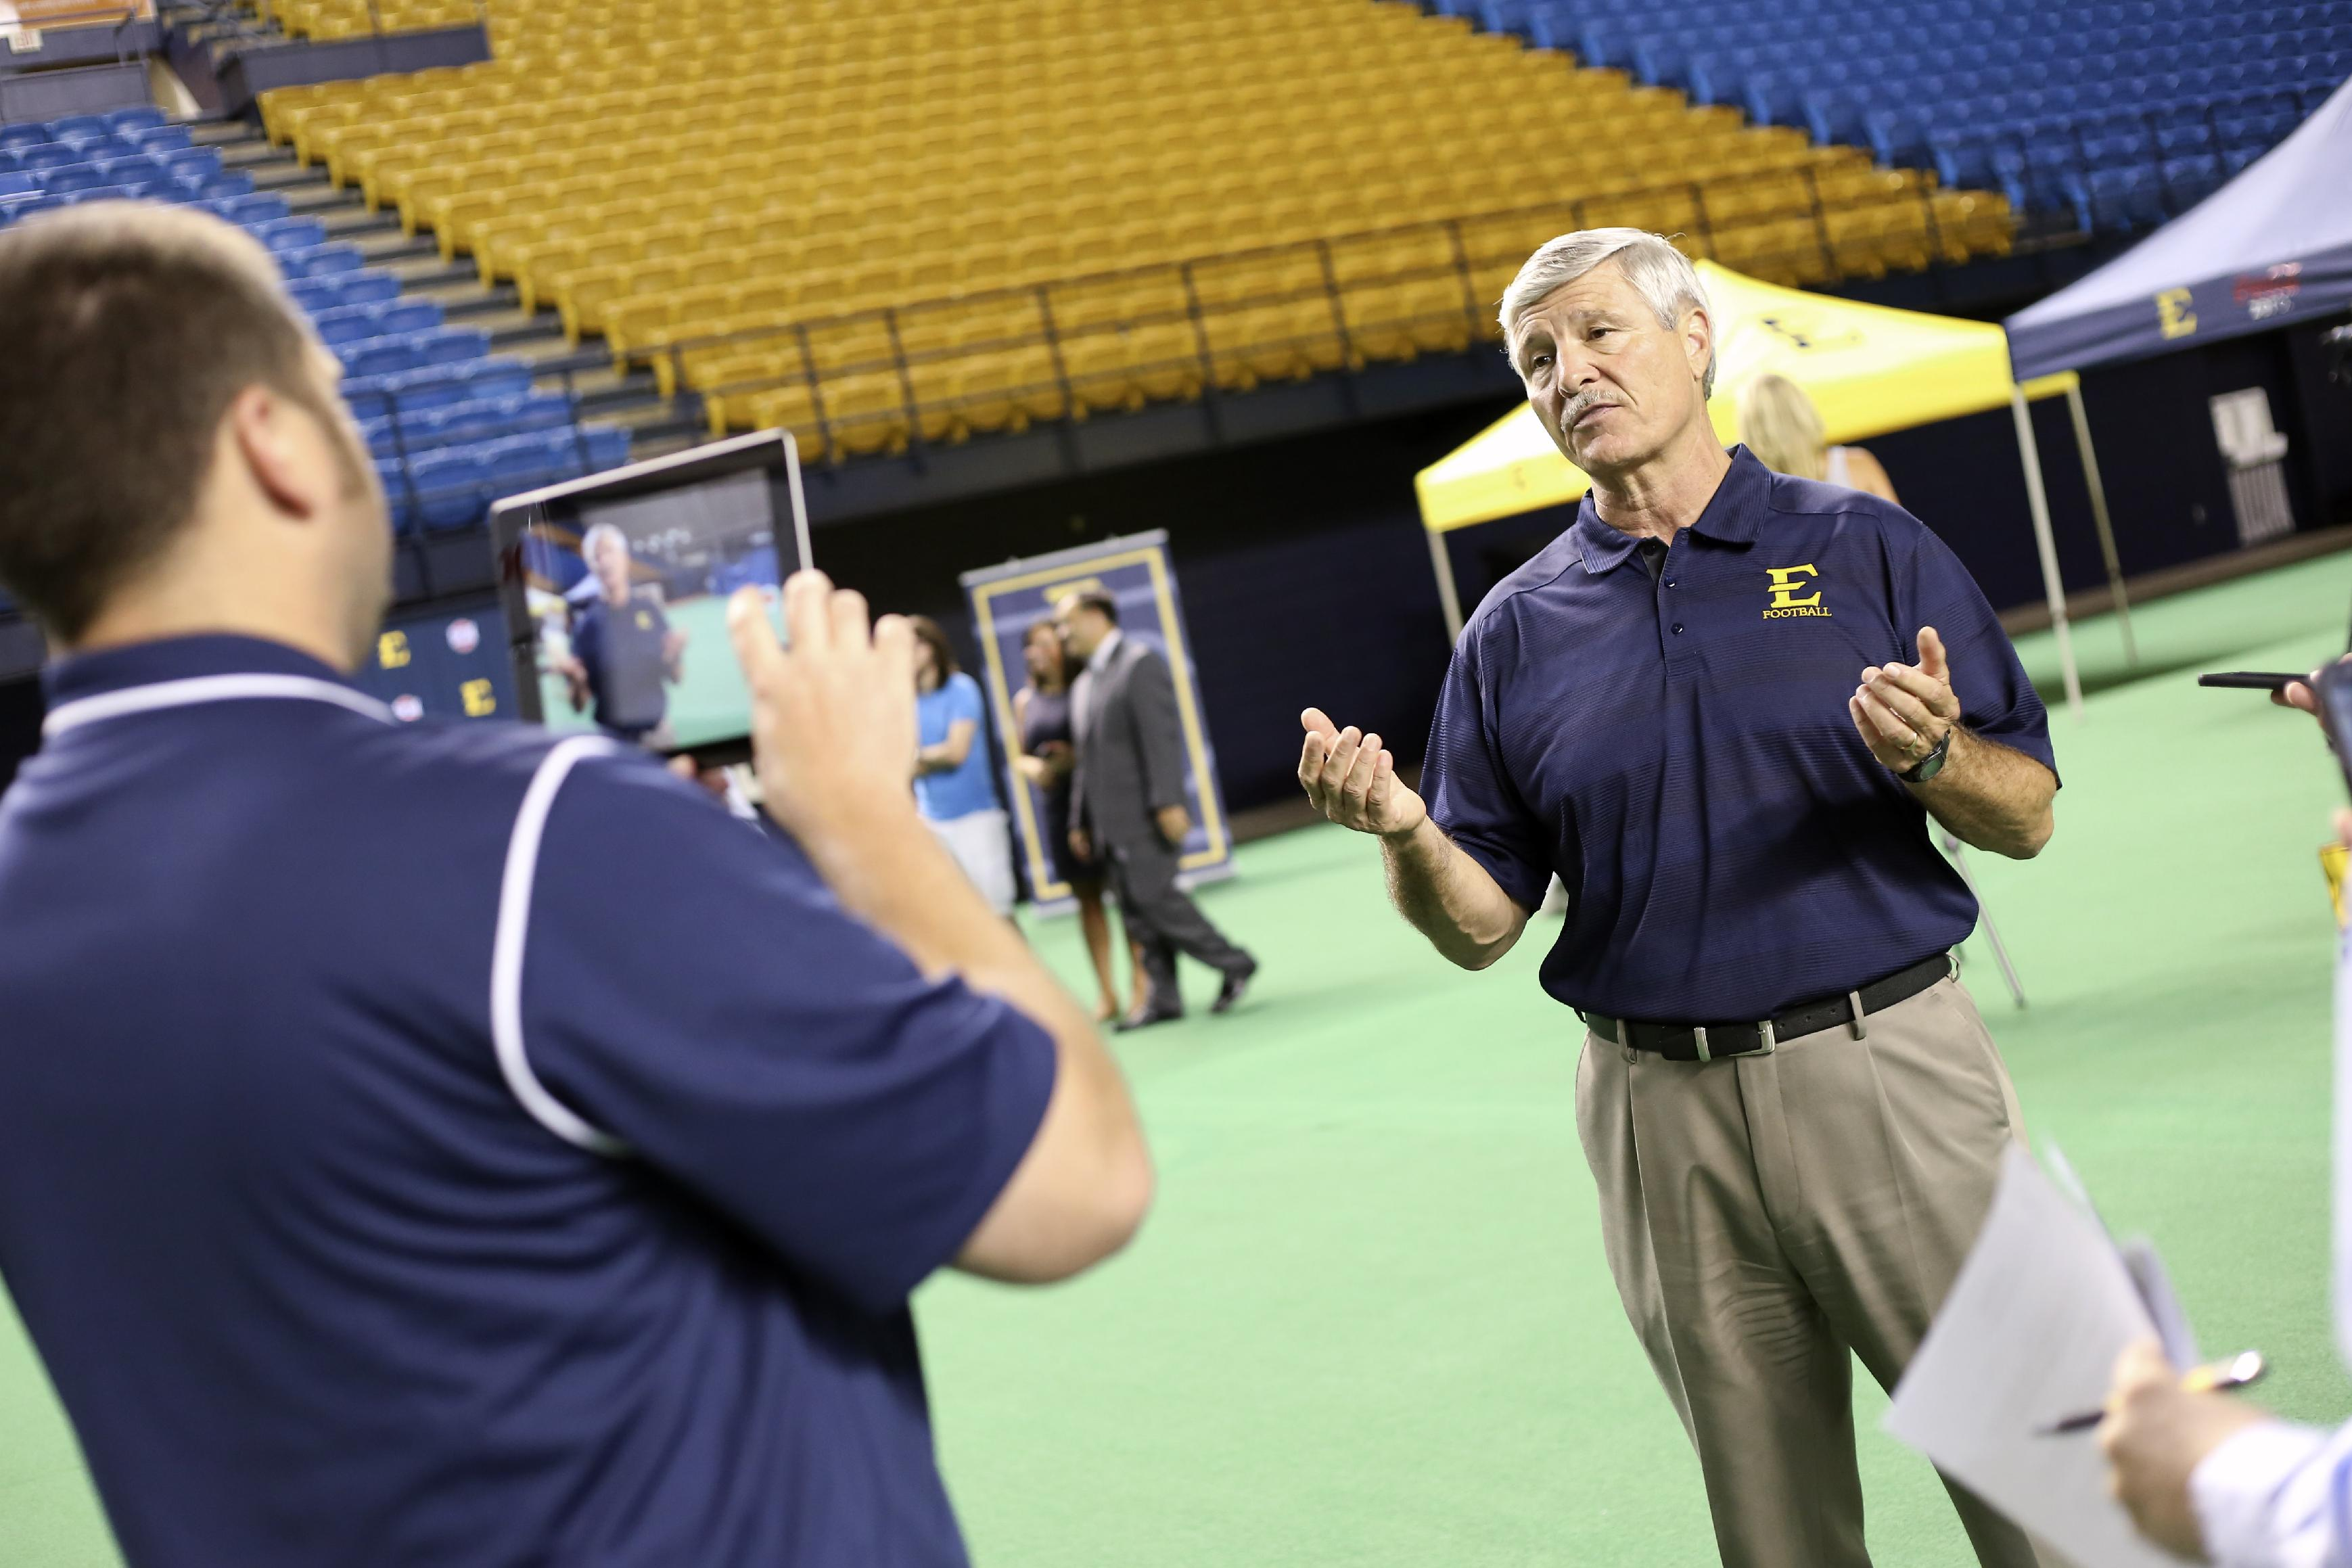 In this Sept. 3, 2014 photo, East Tennessee State head coach Carl Torbush talks to the media during the school's NCAA college football media day in Johnson City, Tenn. (AP Photo/East Tennessee State, Ron Campbell)